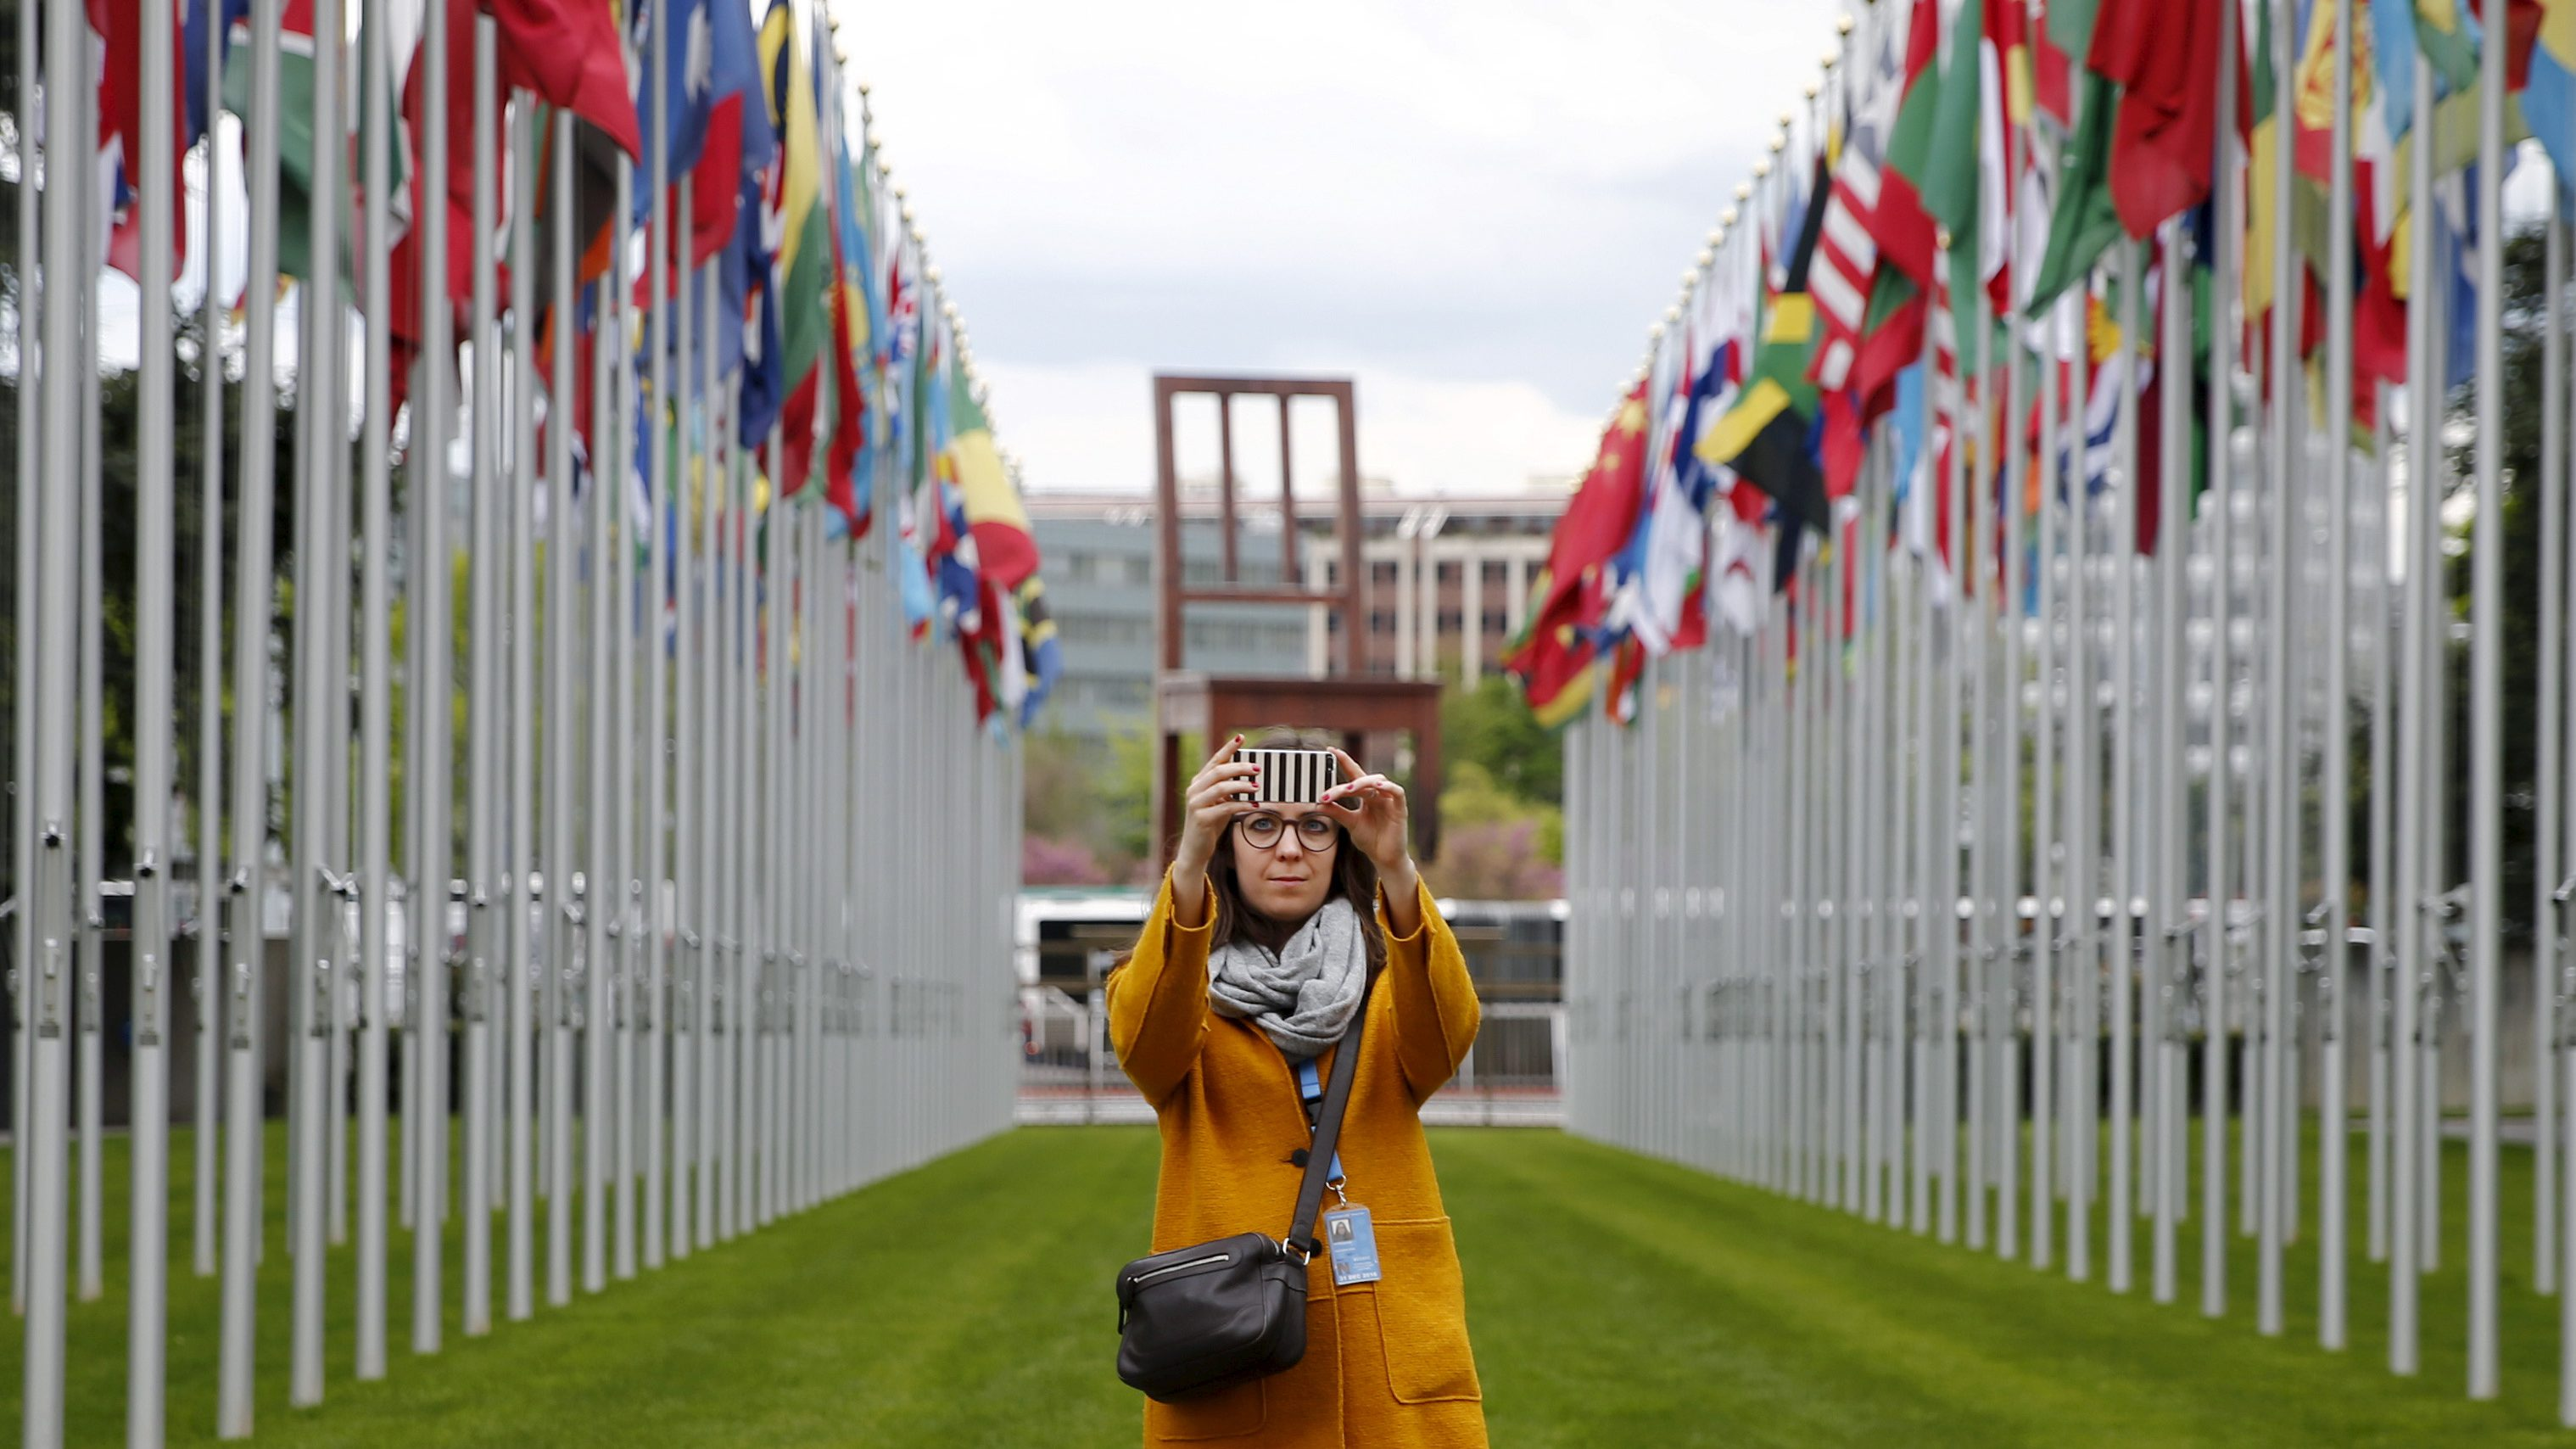 A staff takes a selfie in the flags alley at the European headquarters of the United Nations in Geneva, Switzerland, April 26, 2016.   - RTX2BP9D